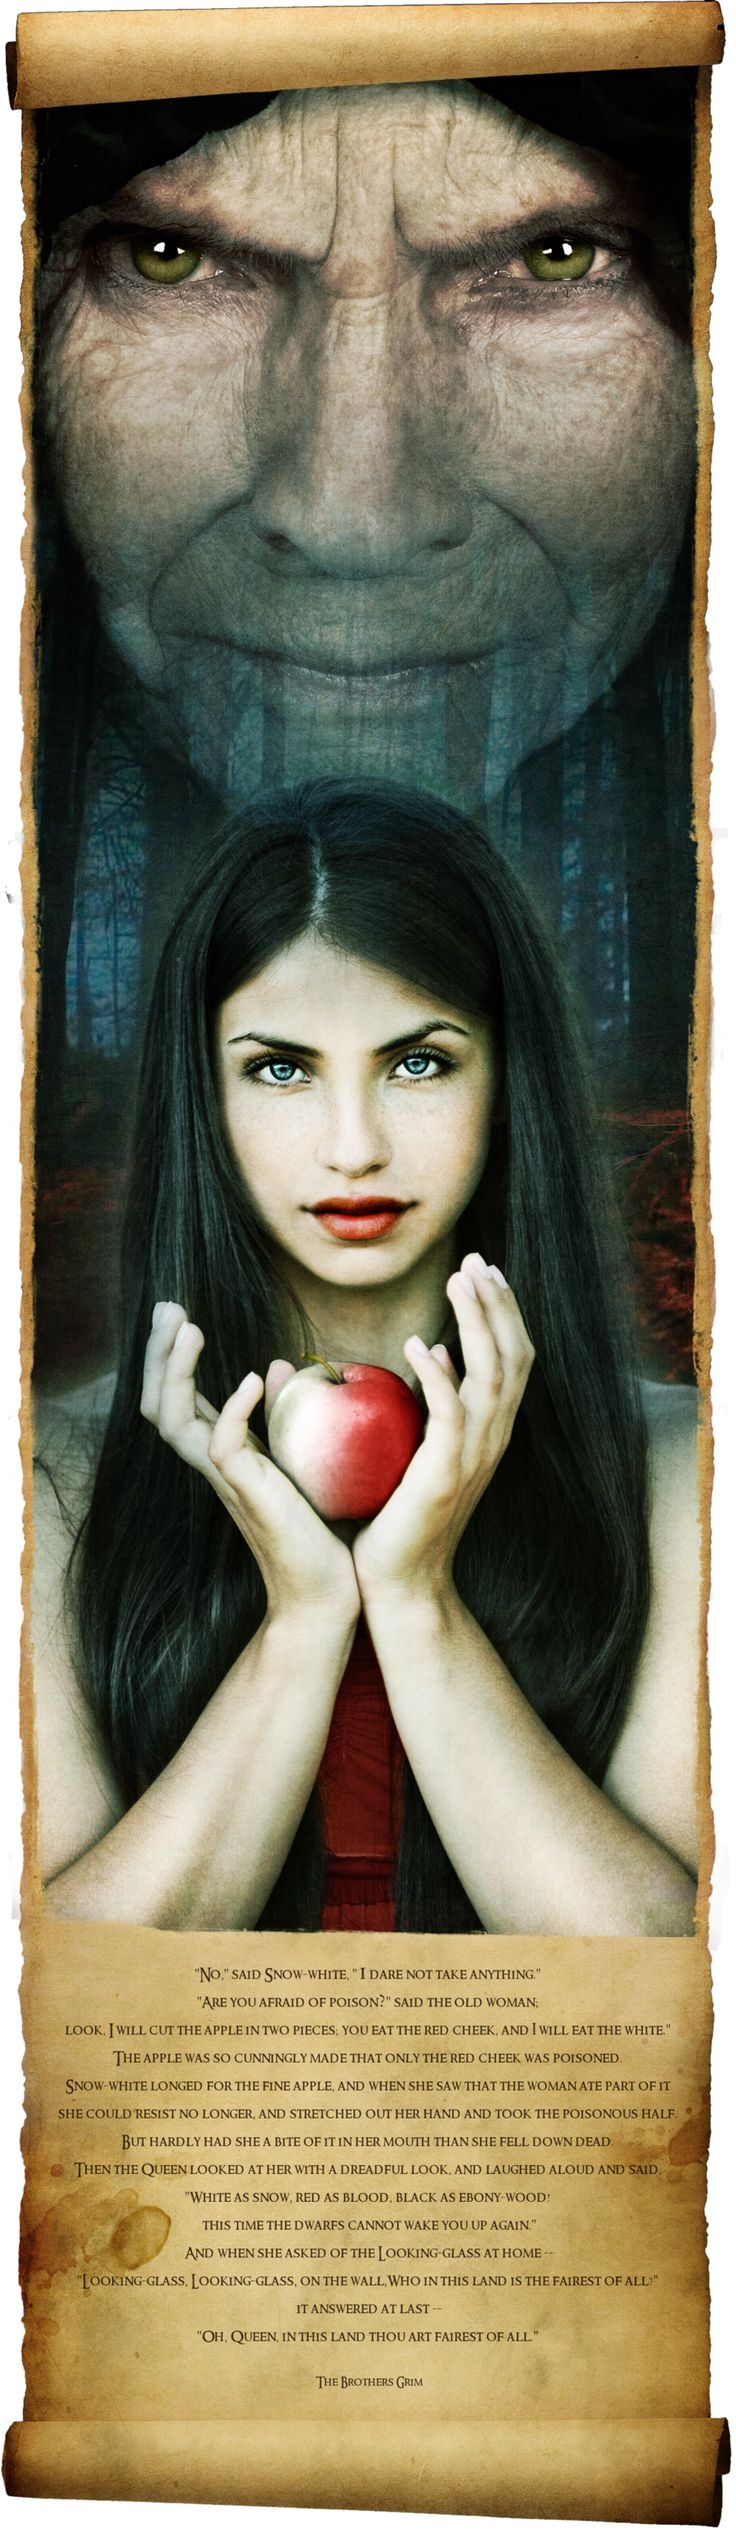 Snow White_Grimm Fairy Tales